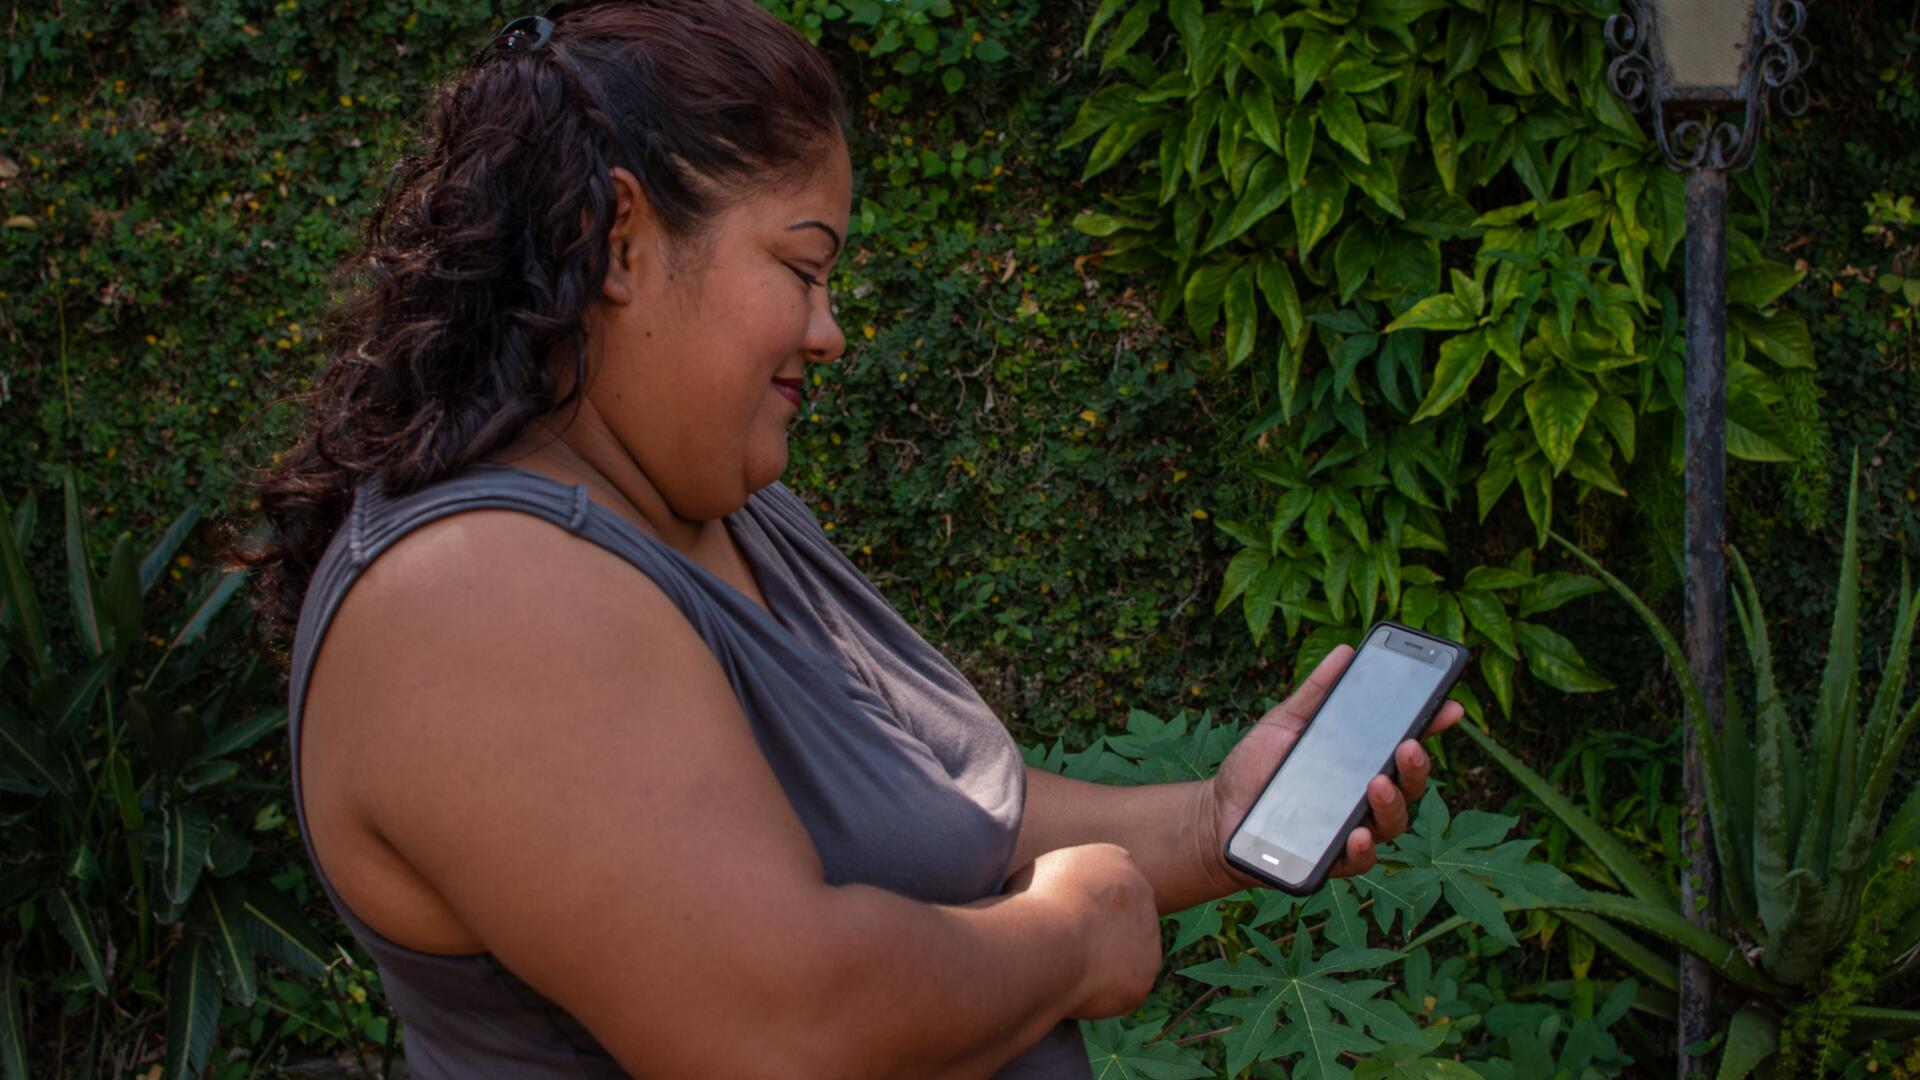 A woman in El Salvador who has received support from the IRC and CuentaNos looks at her cellphone